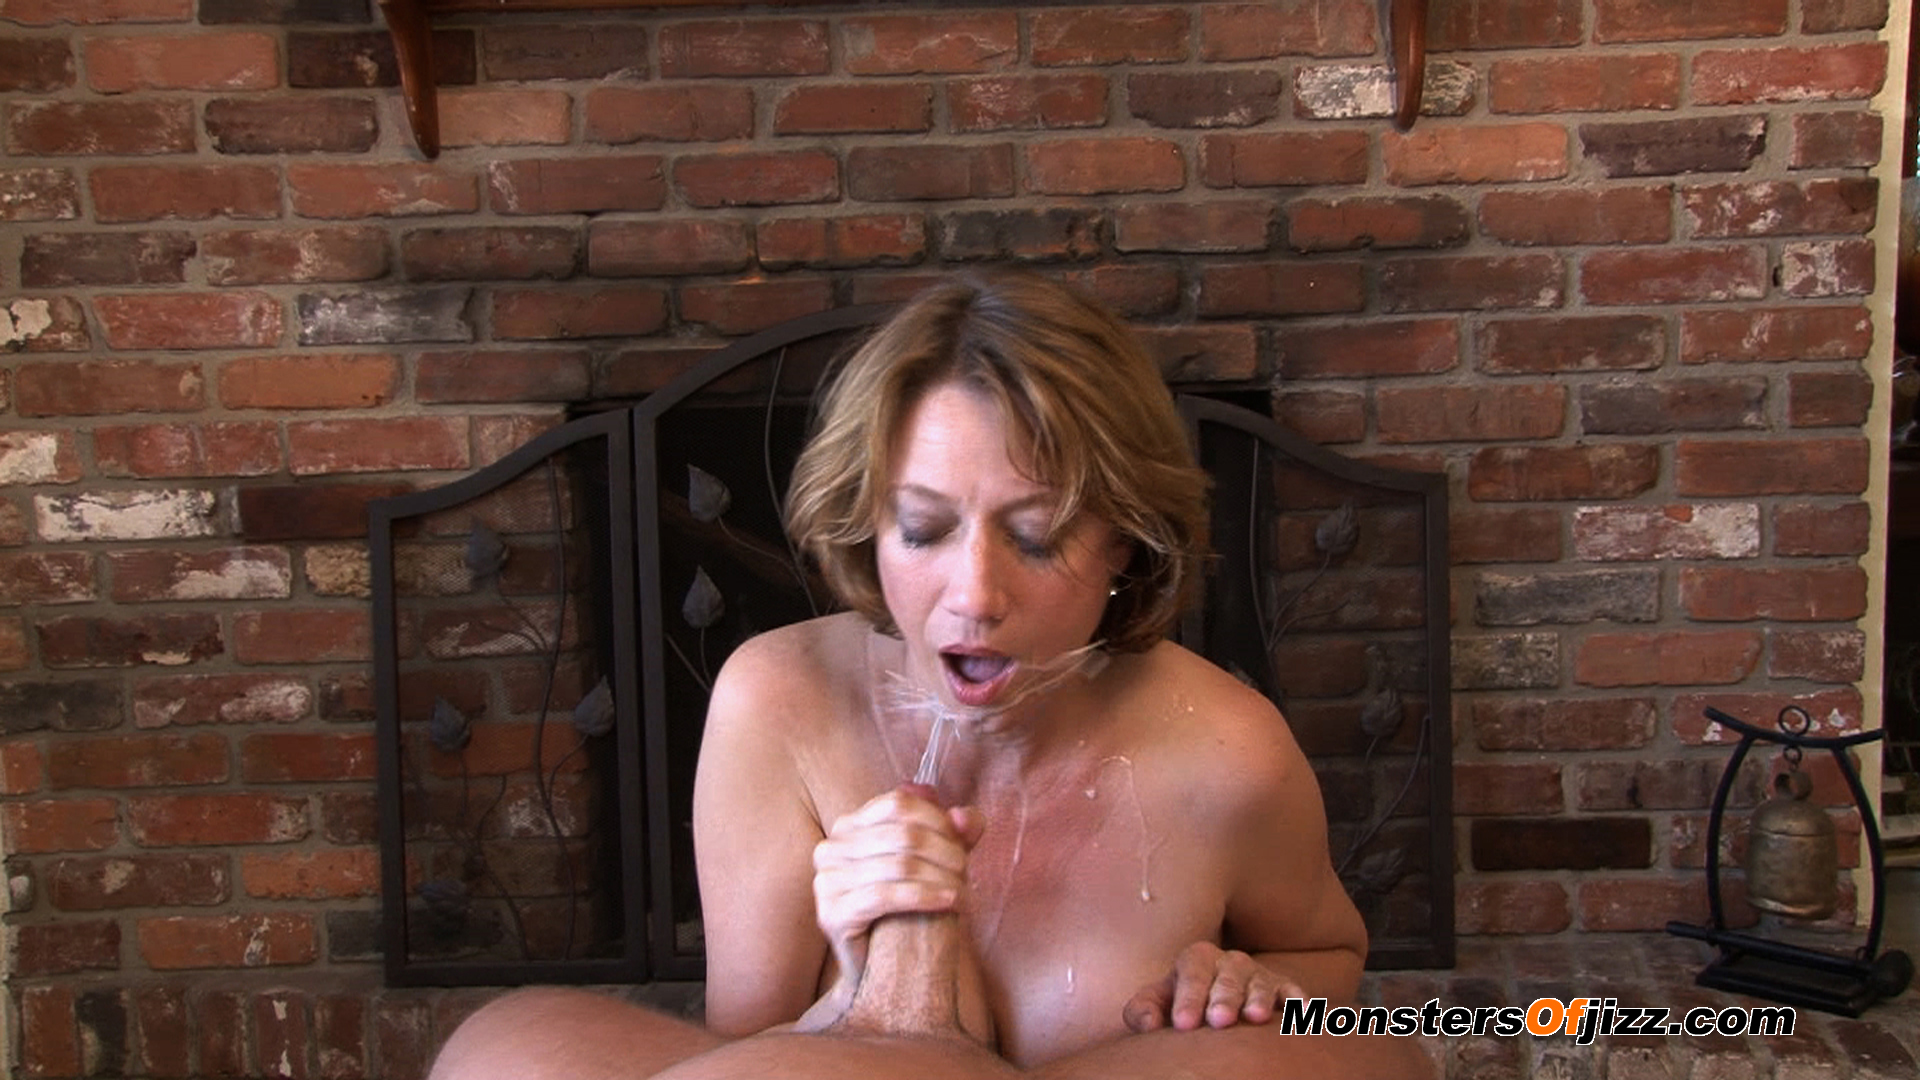 Free monster jizz porno stream nude picture